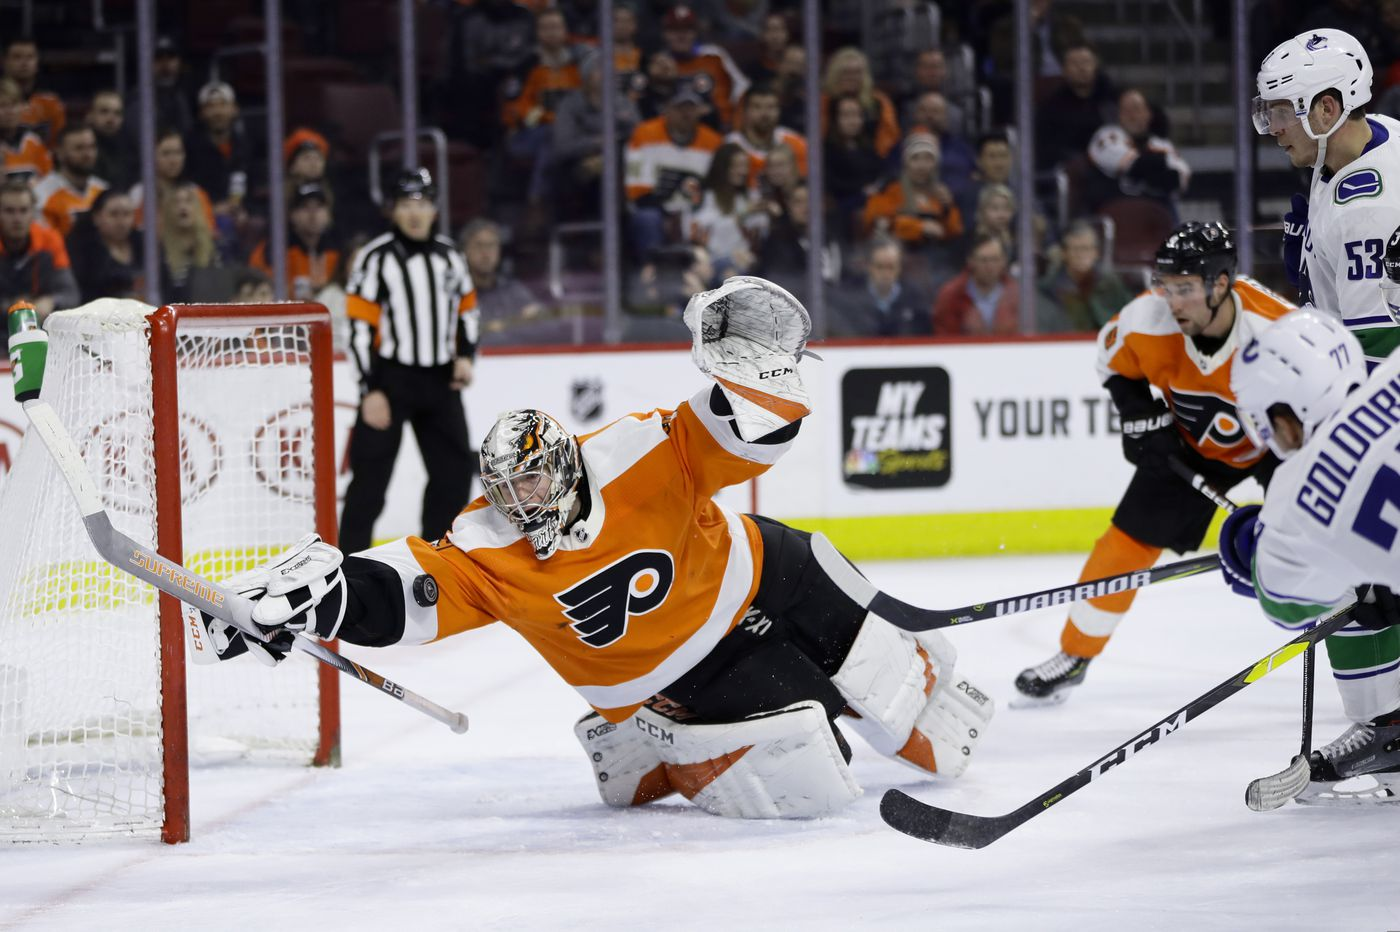 Video of Carter Hart's remarkable save, and what the Canucks were saying